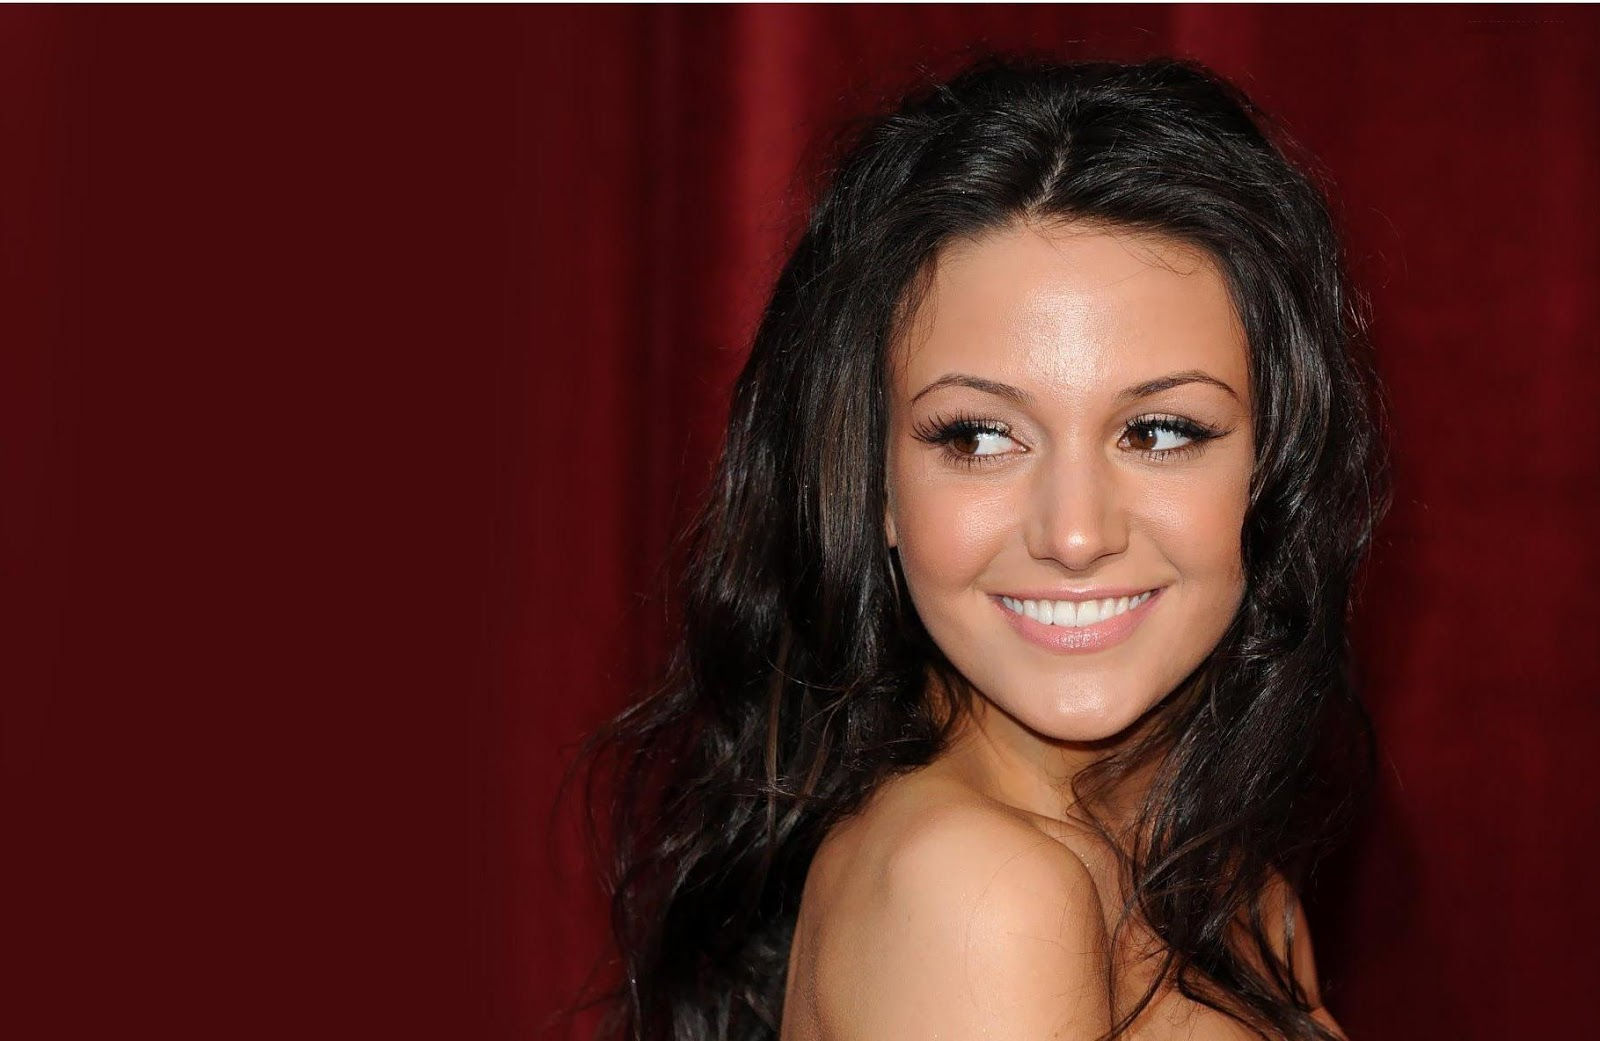 michelle keegan hq wallpapers - photo #14